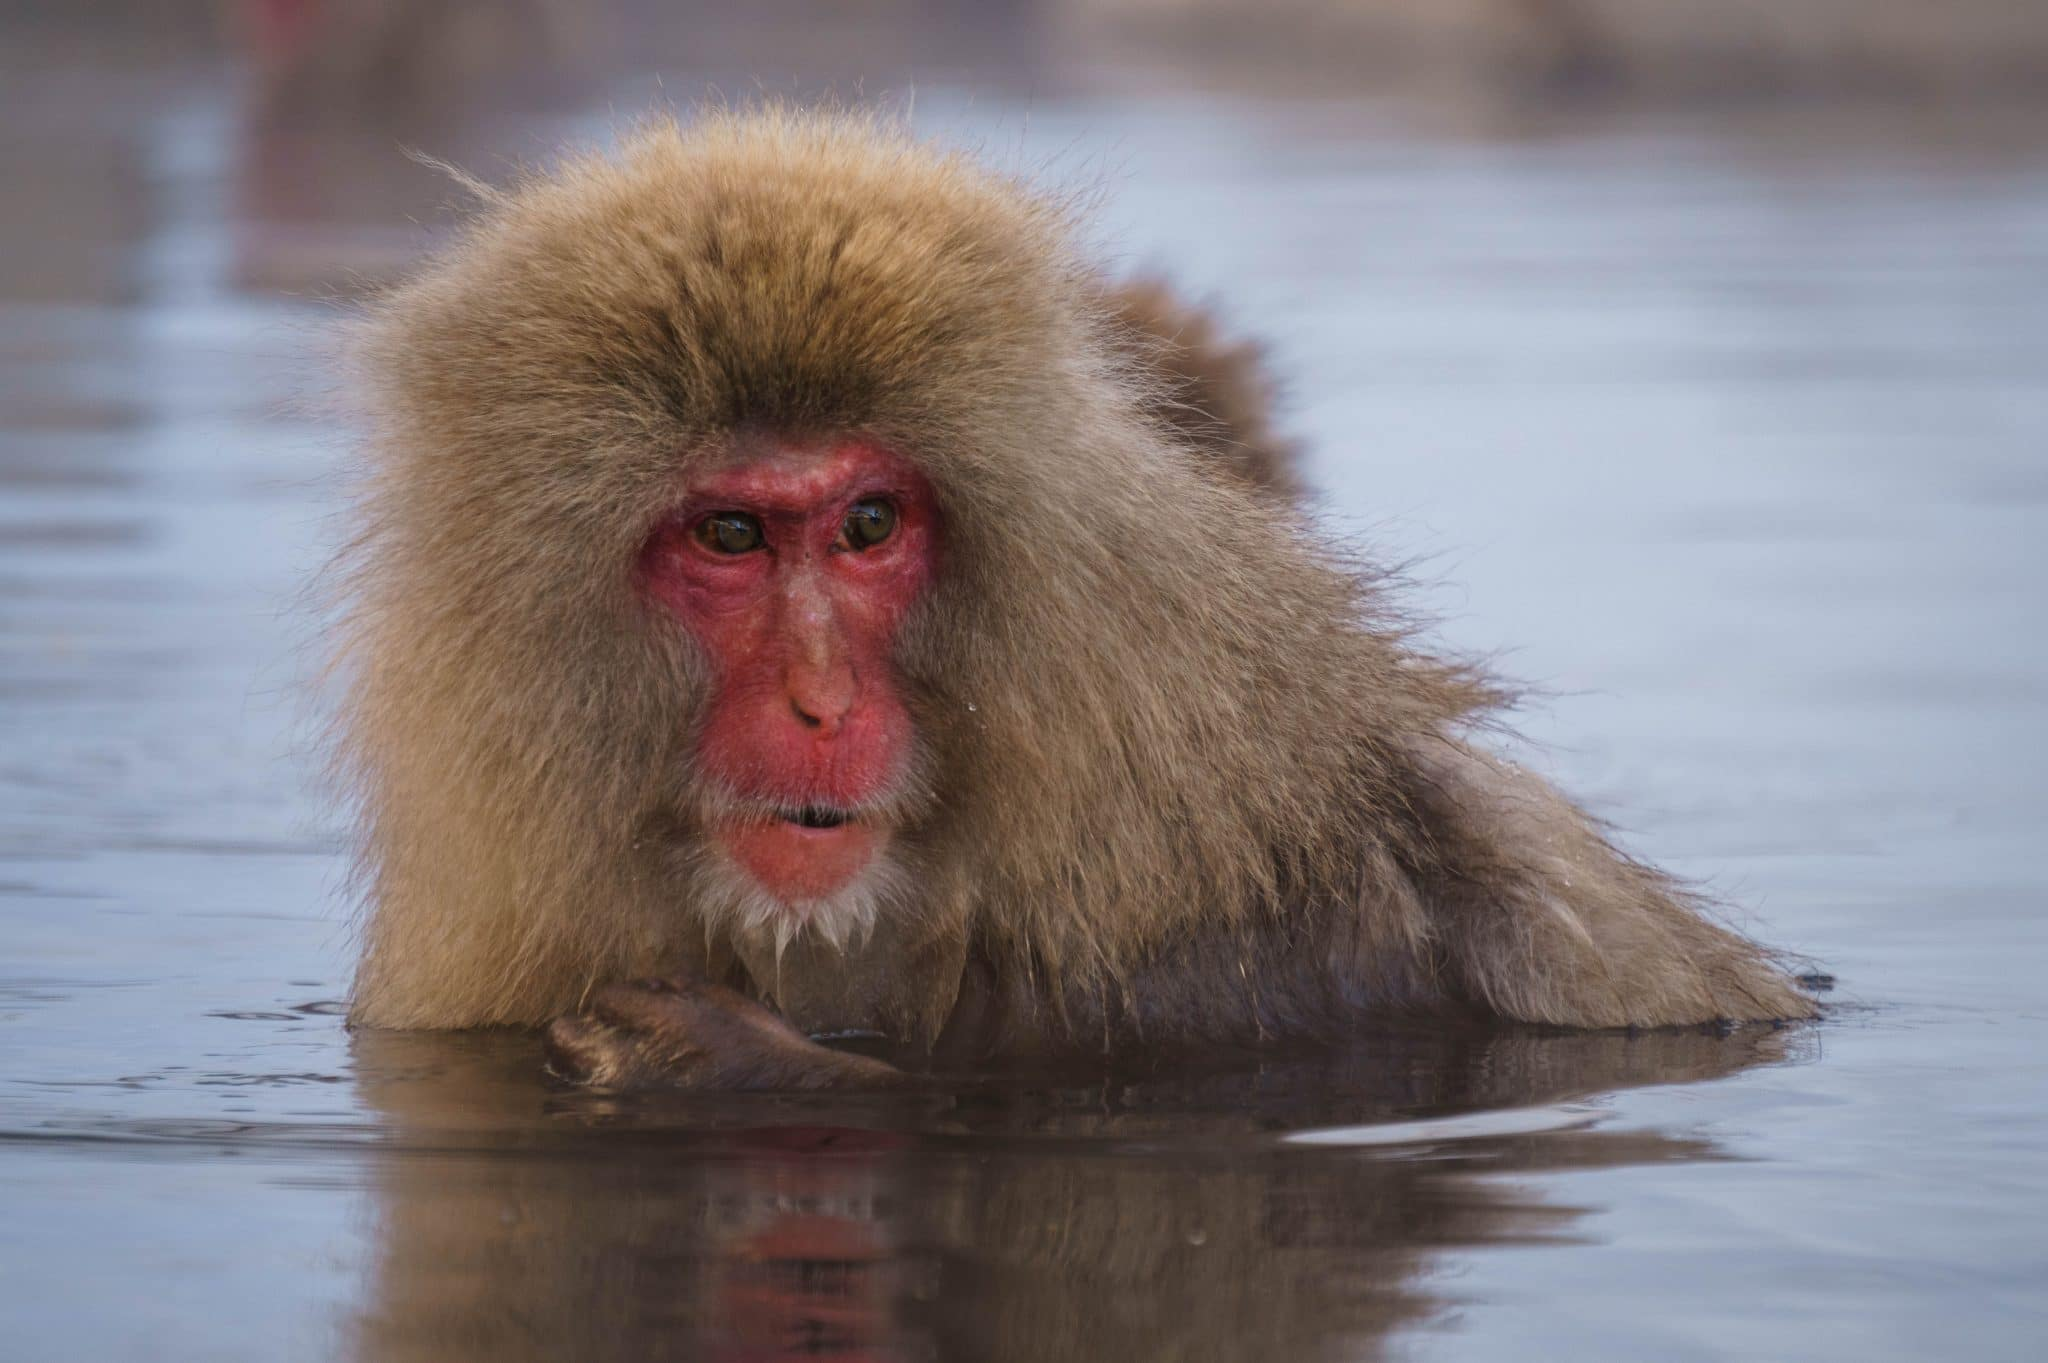 Snow Monkeys at Jigokudani Park